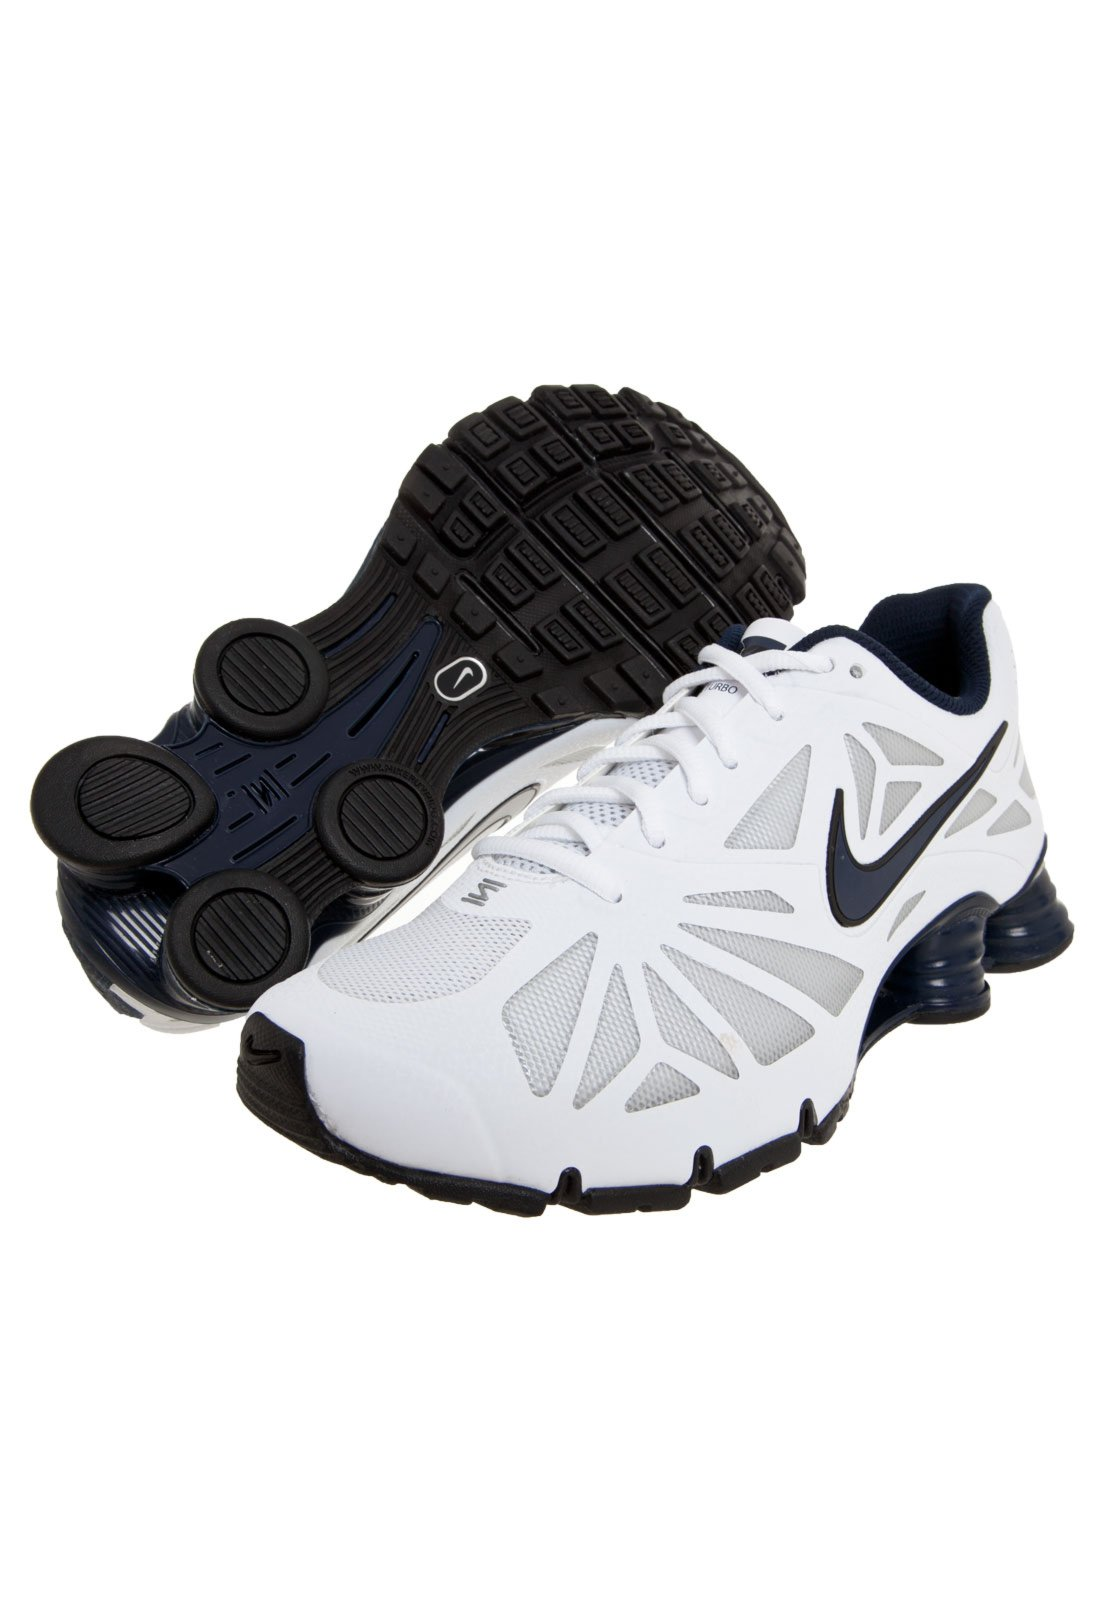 buy popular 99ce8 df5f0 ... nike shox turbo, Nike Stores Nike Online Shop Nike Outlet . ...